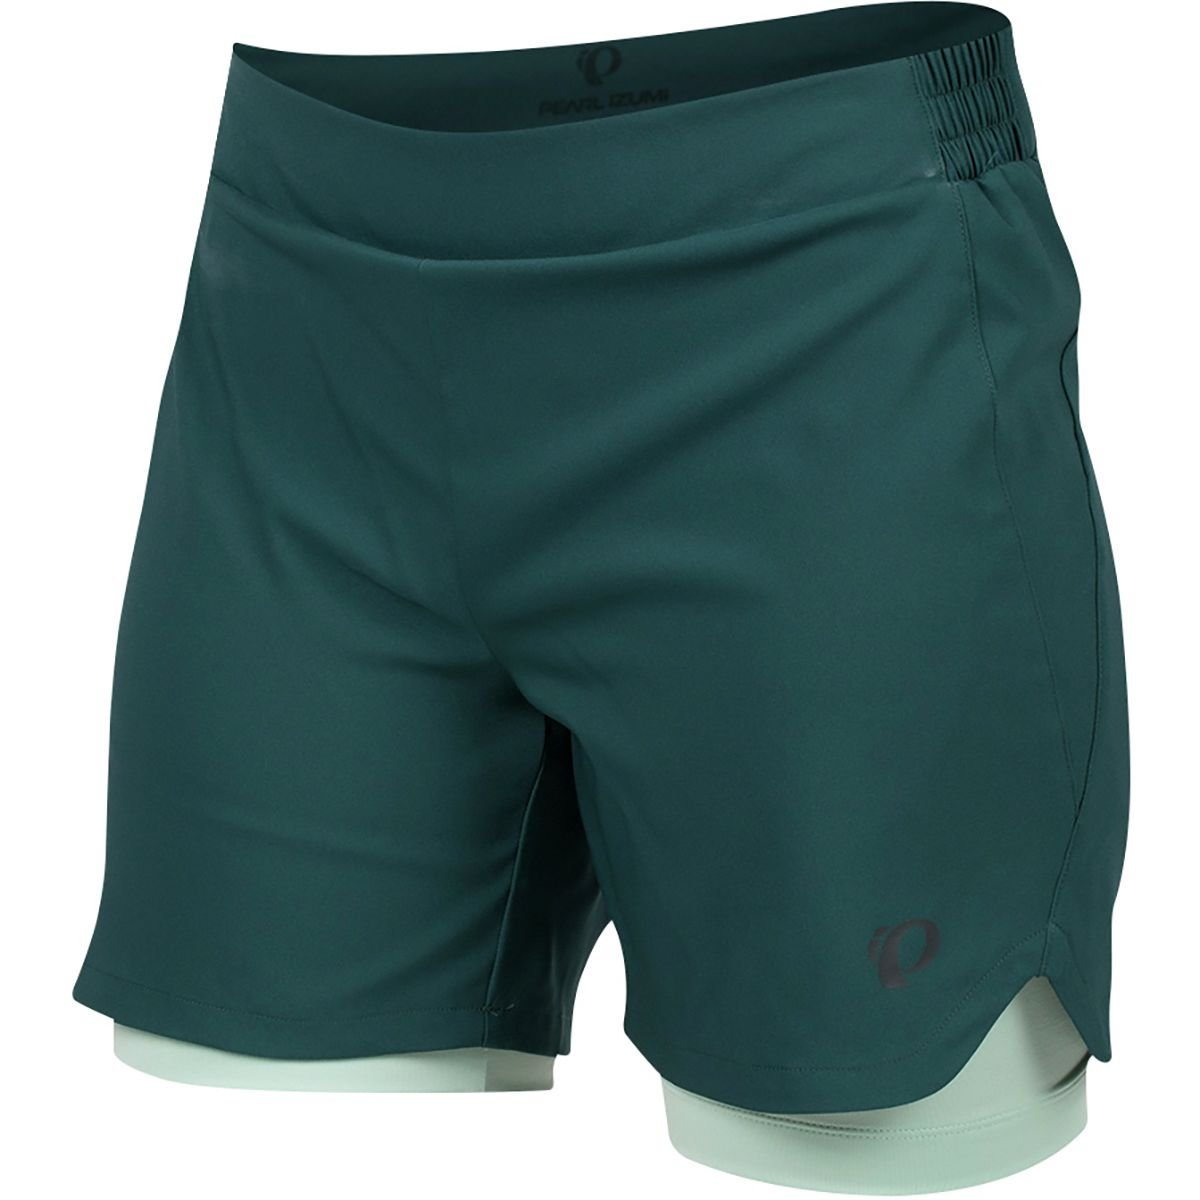 Pearl iZUMi W Journey Shorts, Sea Moss/Mist Green, 4